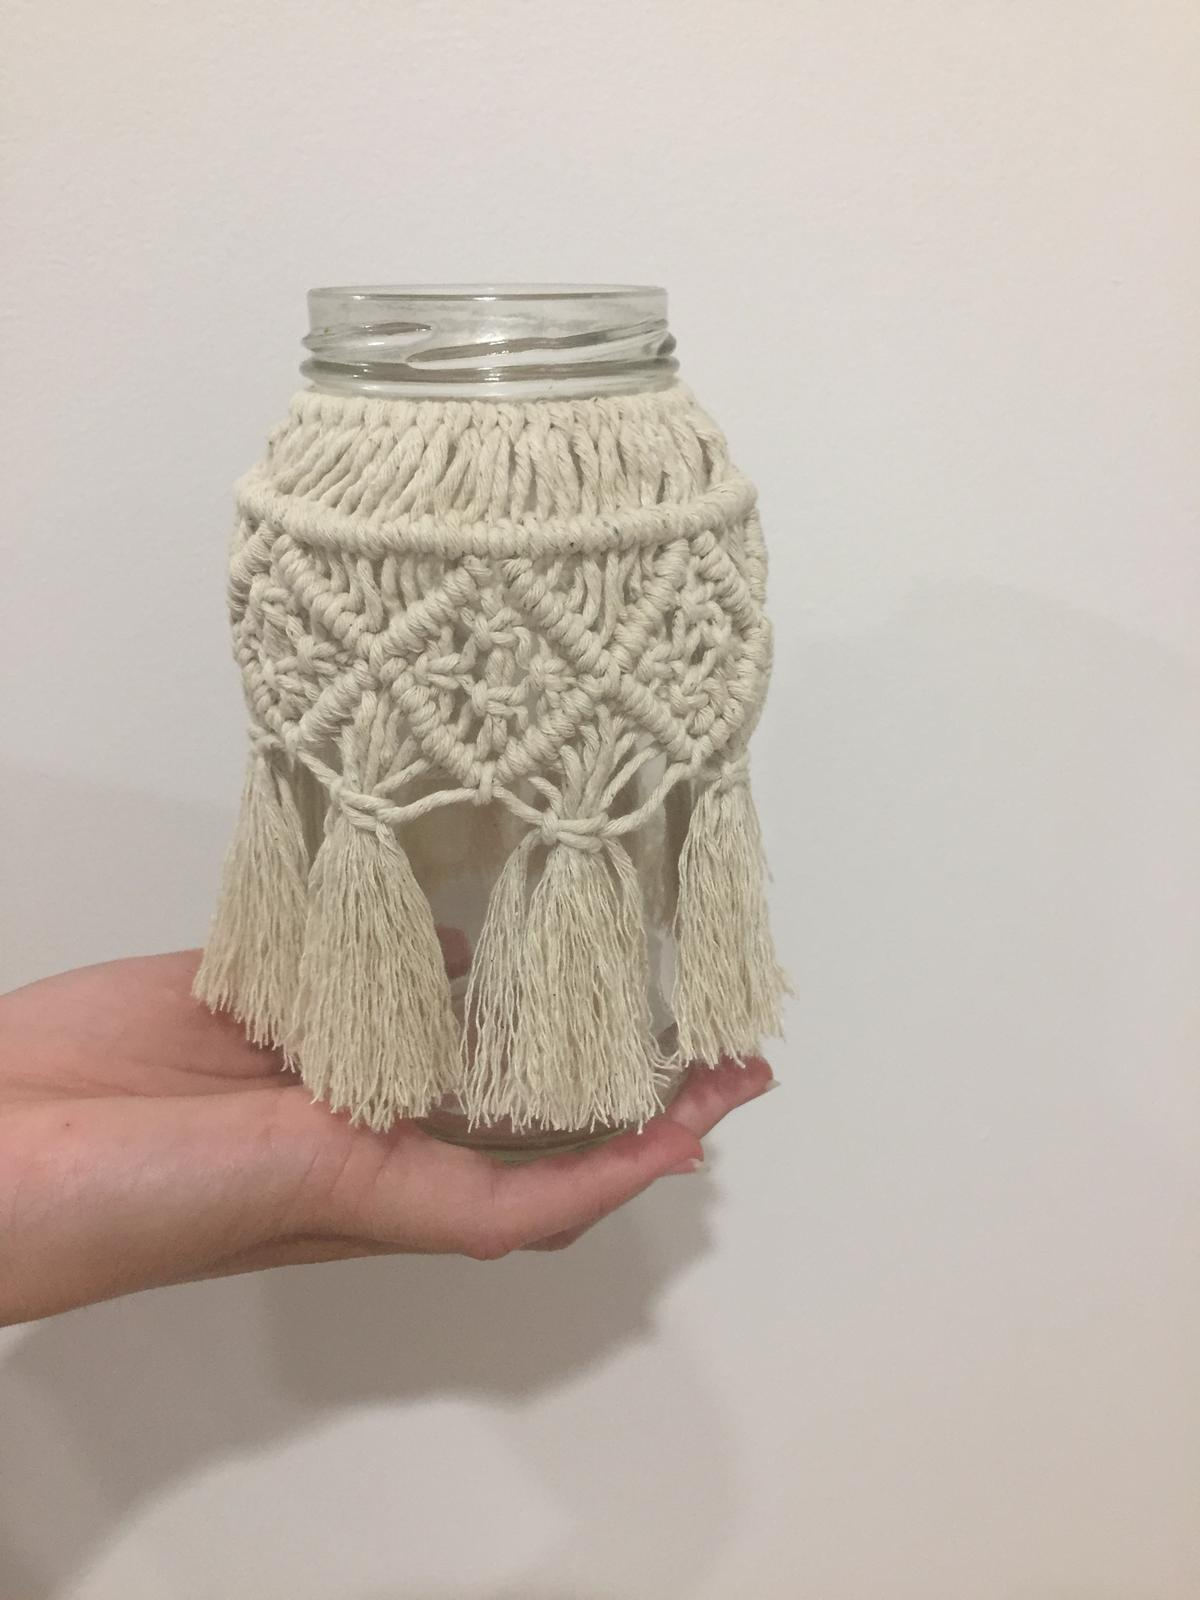 Macrame around recycled jar